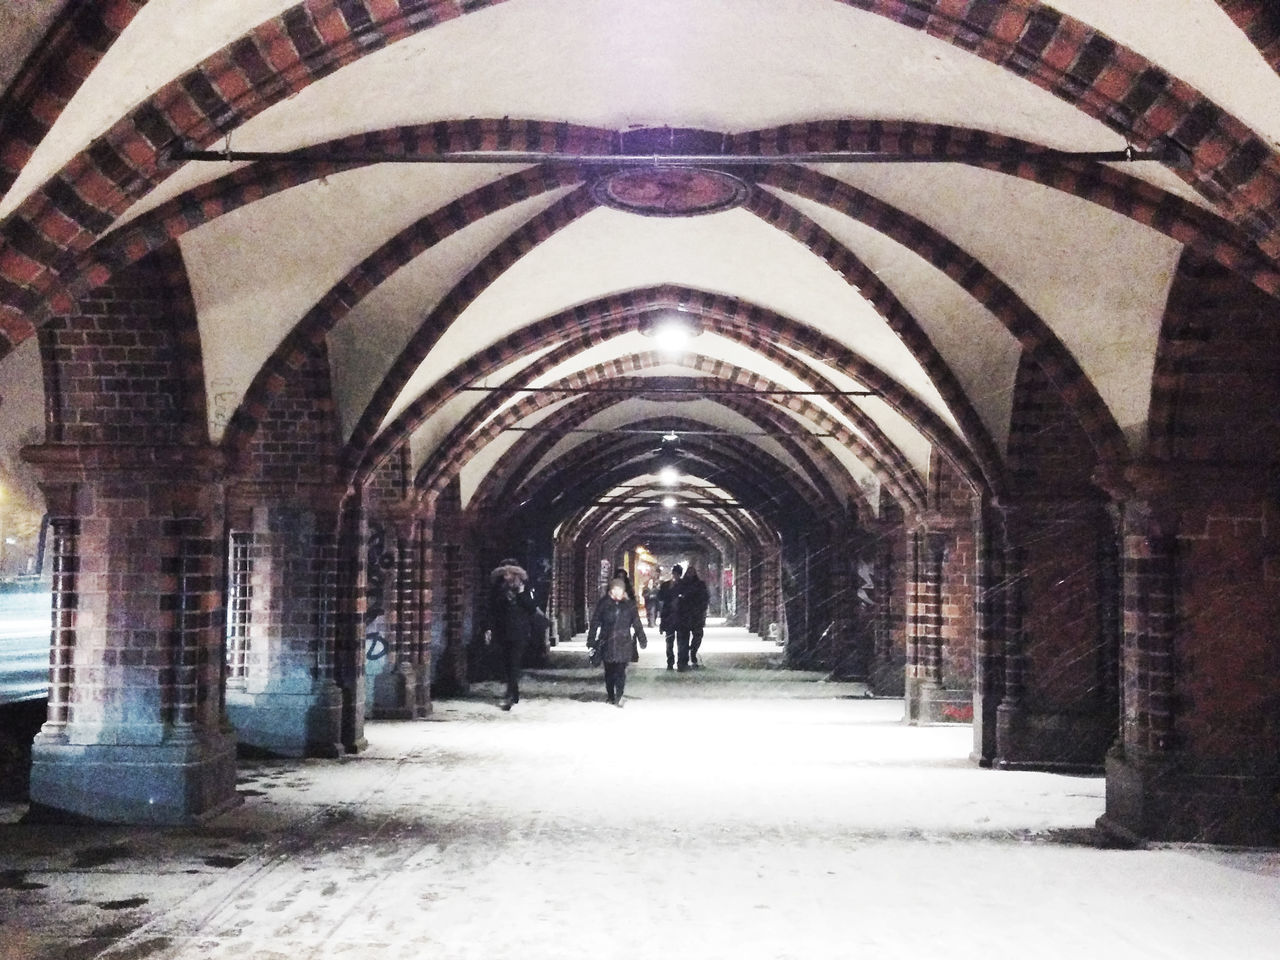 Arch Architectural Column Architecture Archway Bridge Building Exterior Colonnade Corridor History In A Row The Way Forward Vanishing Point Snowing Snowing Day